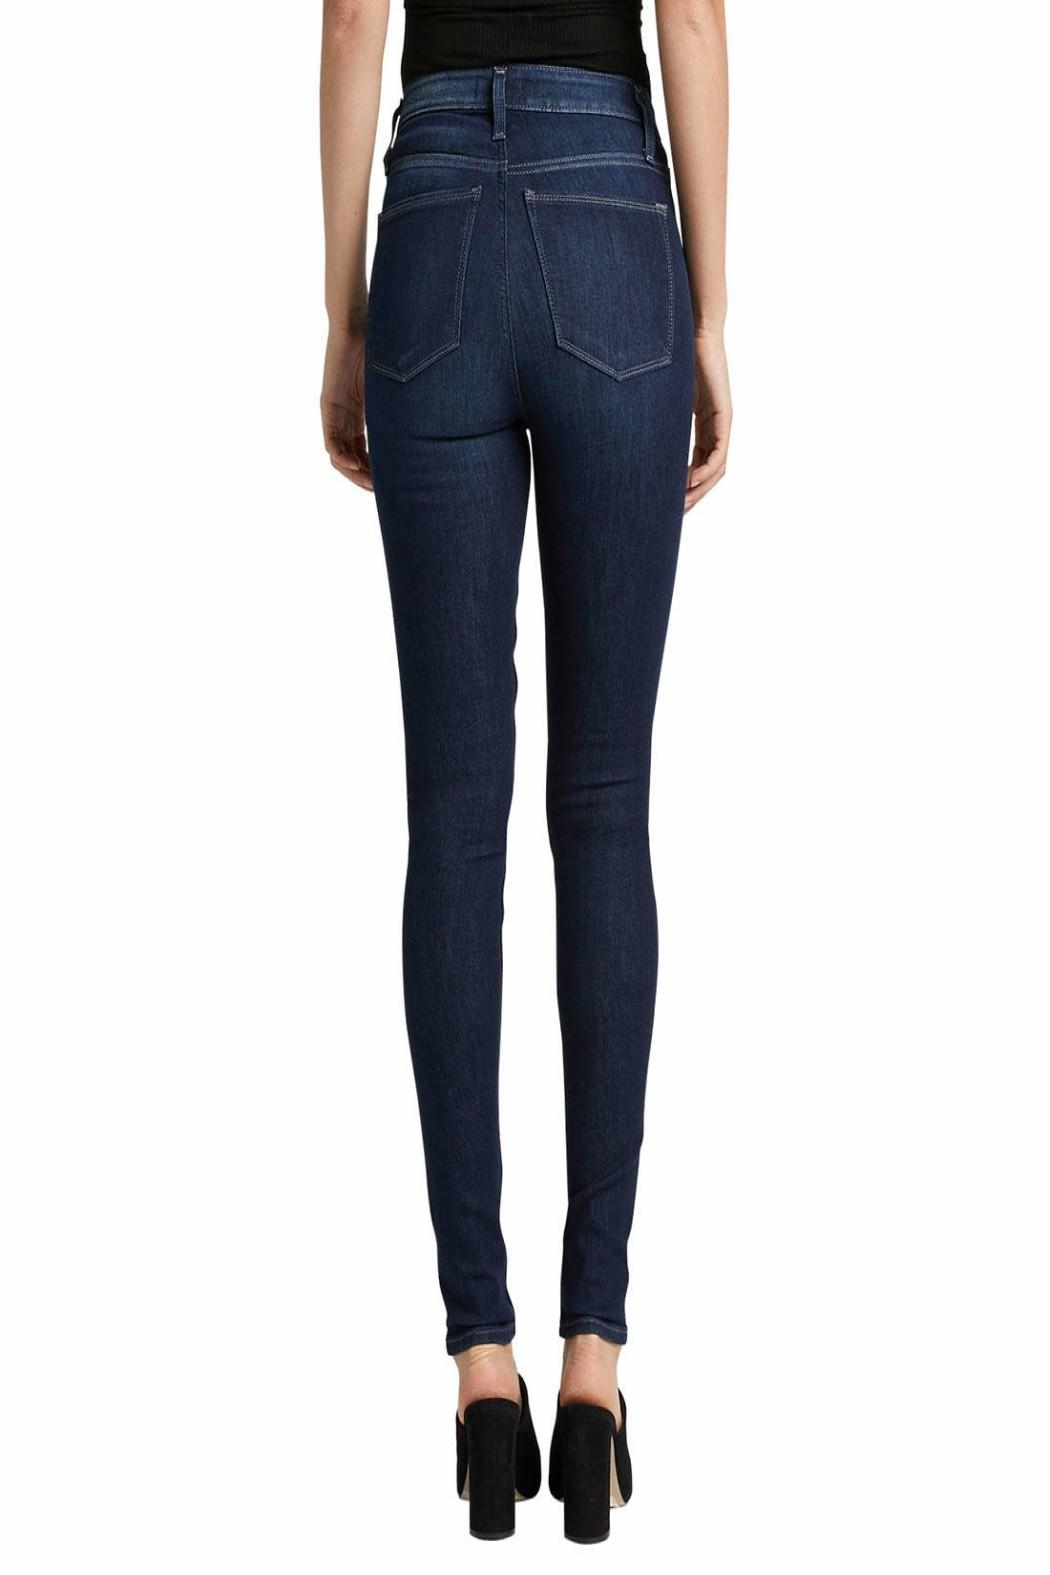 Silver Jeans Co. High-Note High-Rise Skinny - Front Full Image